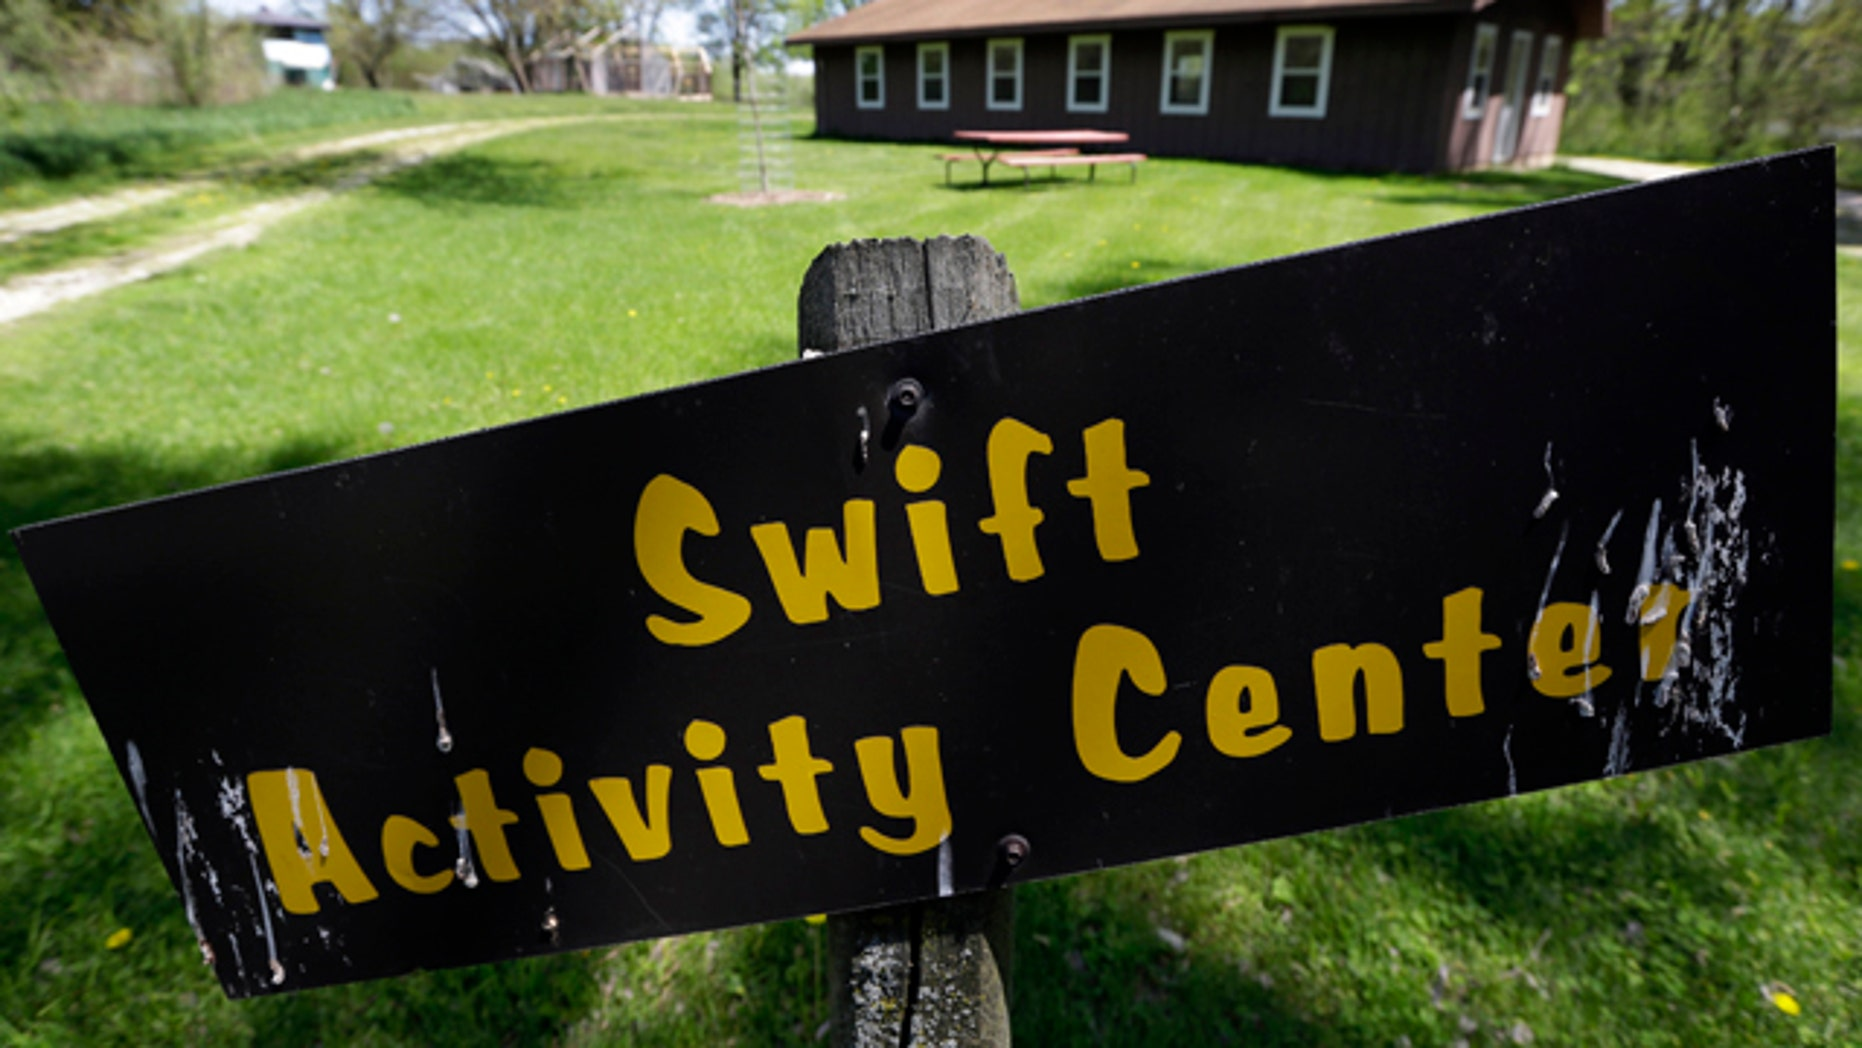 May 14, 2013: The Swift Activity Center at the Camp Conestoga Girls Scouts camp in New Liberty, Iowa.